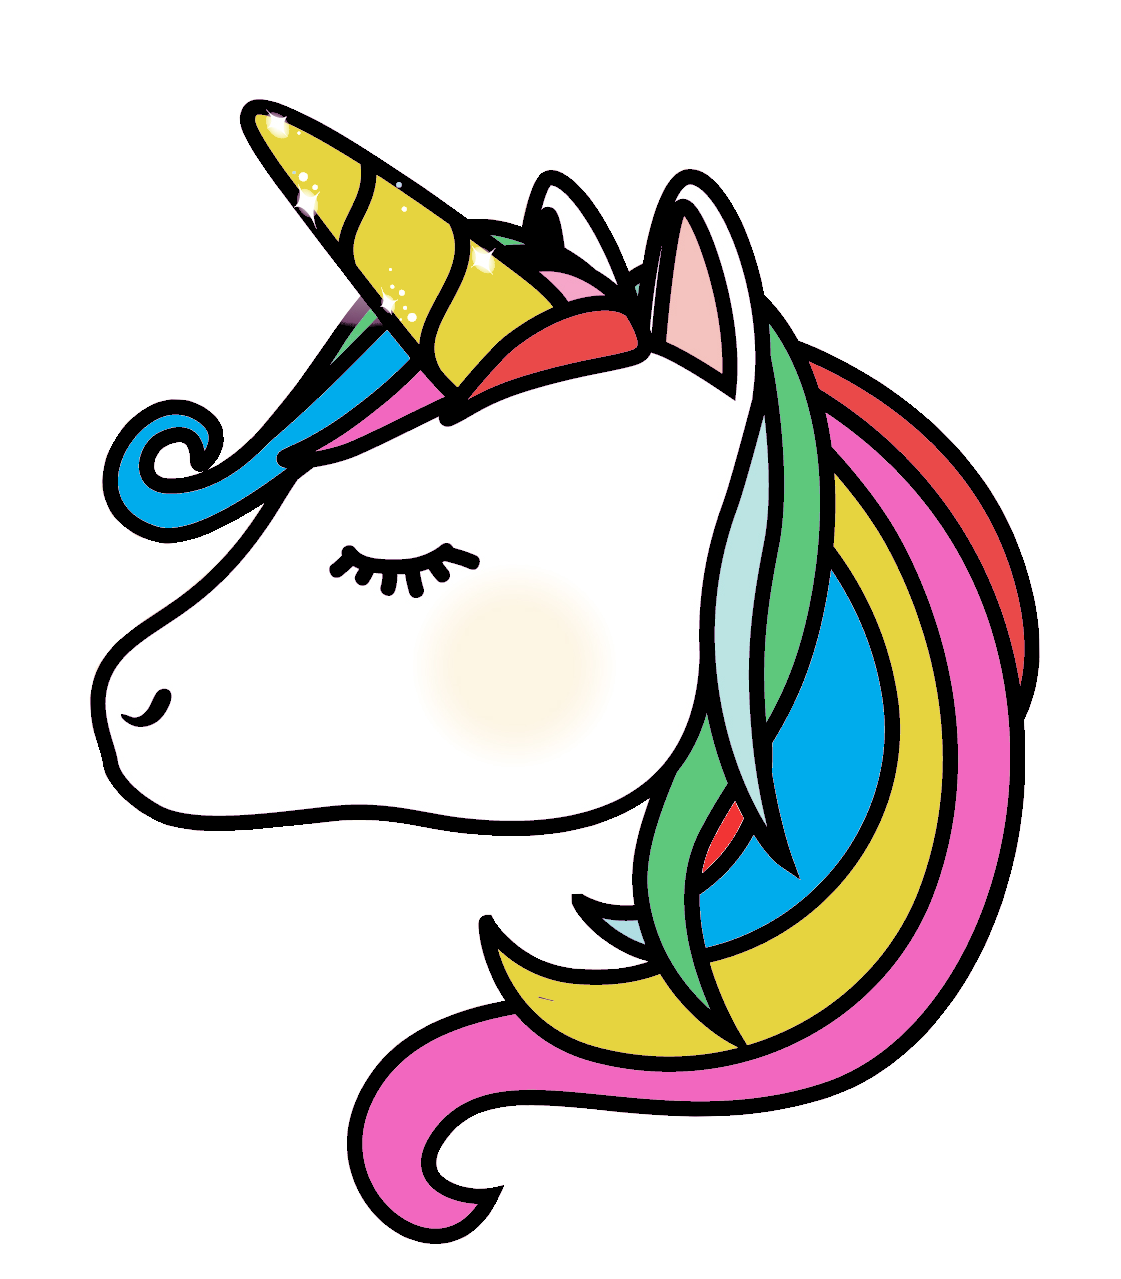 Unicorn crown clipart royalty free library unicorn-png--1121.png (1121×1279) | Fiestas infantiles | Pinterest ... royalty free library